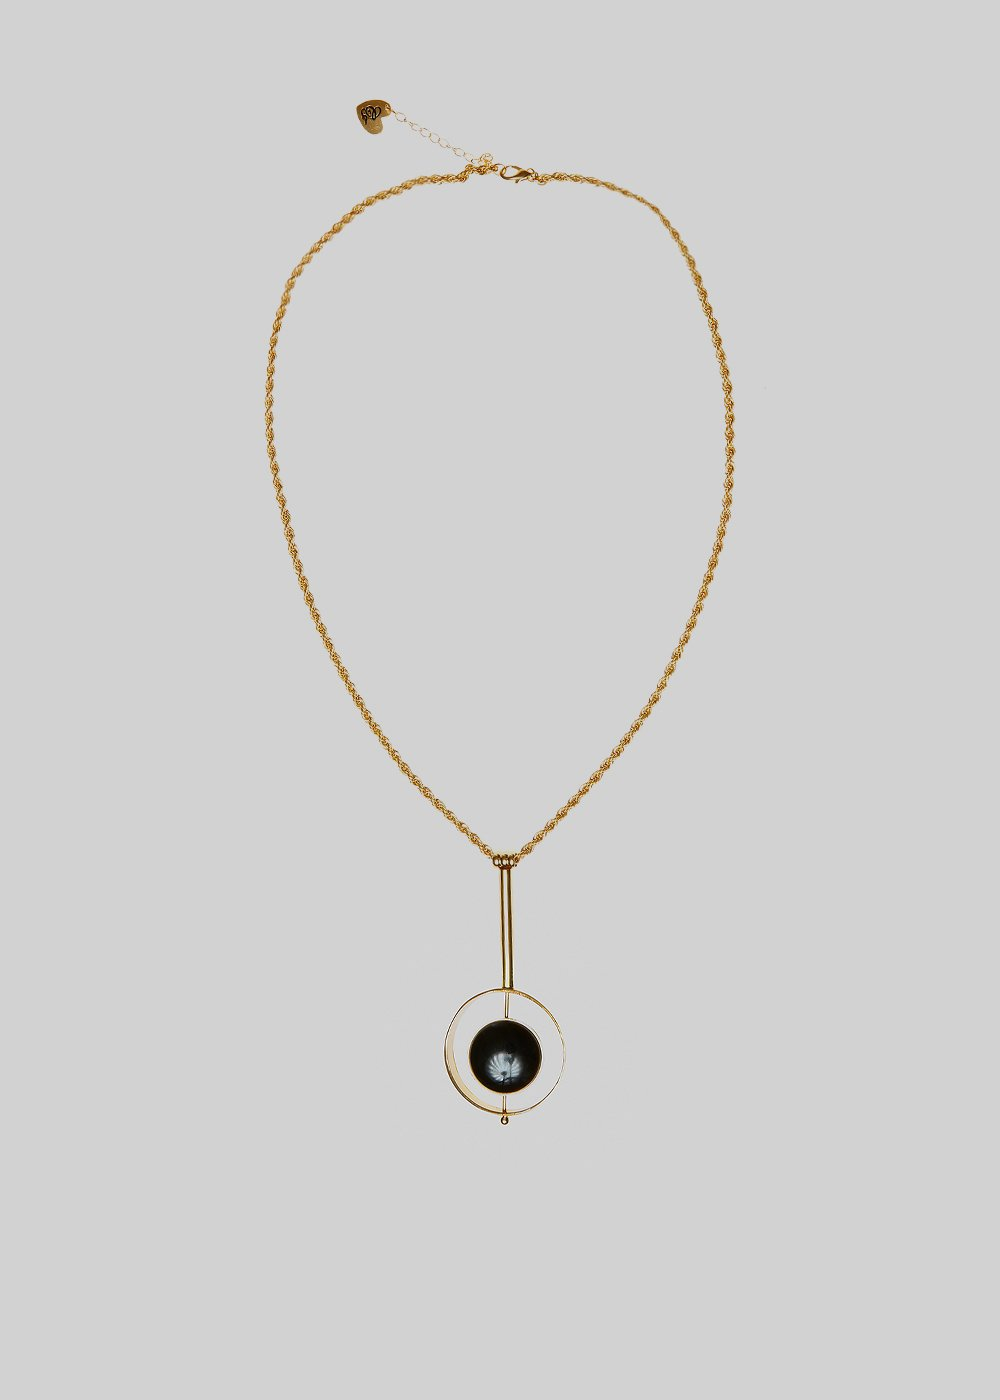 Creamy Metal Necklace with round circle detail - Black